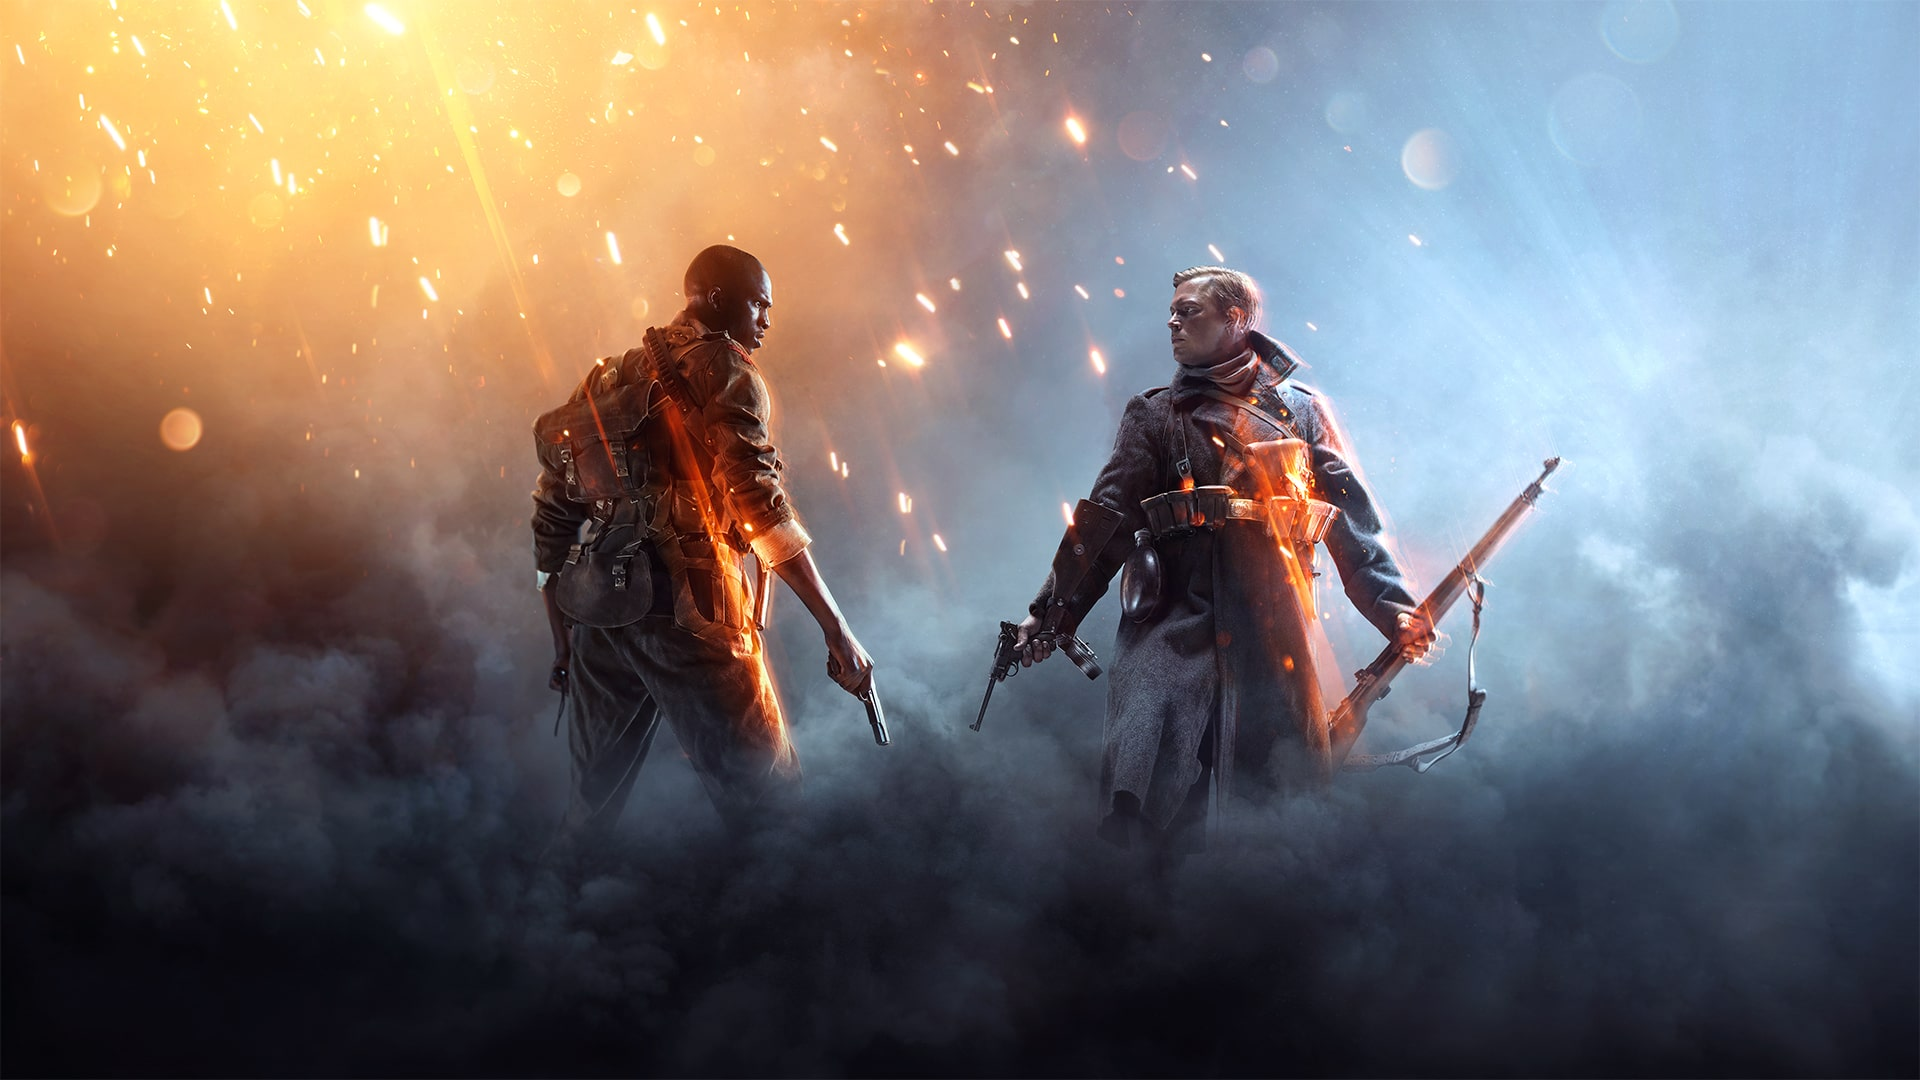 battlefield 1 wallpapers (20 in 1) download 1920 x 1080 hd